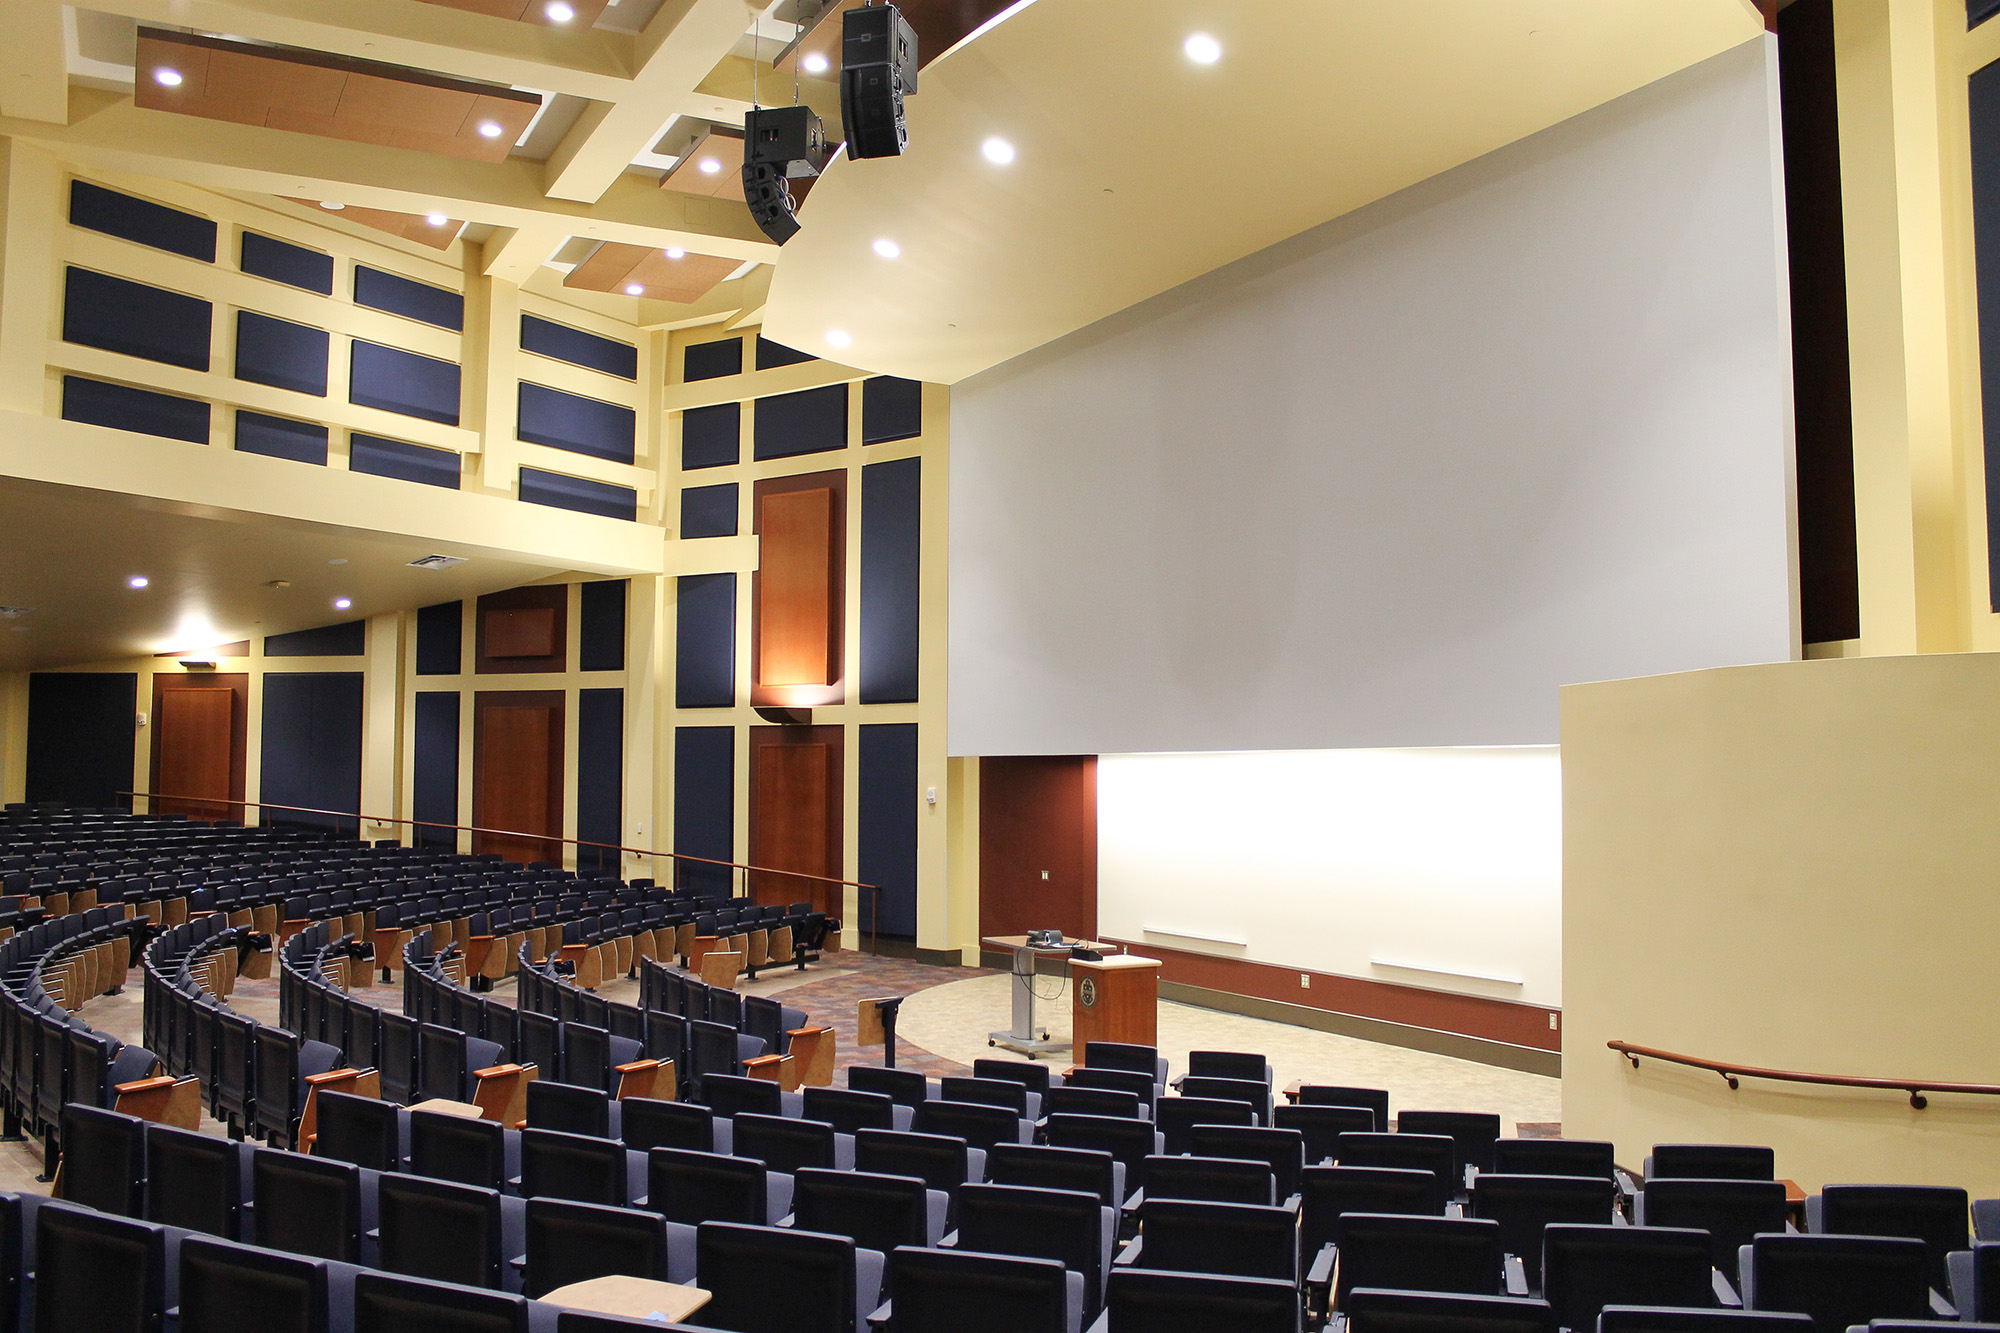 DAVID LAWRENCE AUDITORIUM